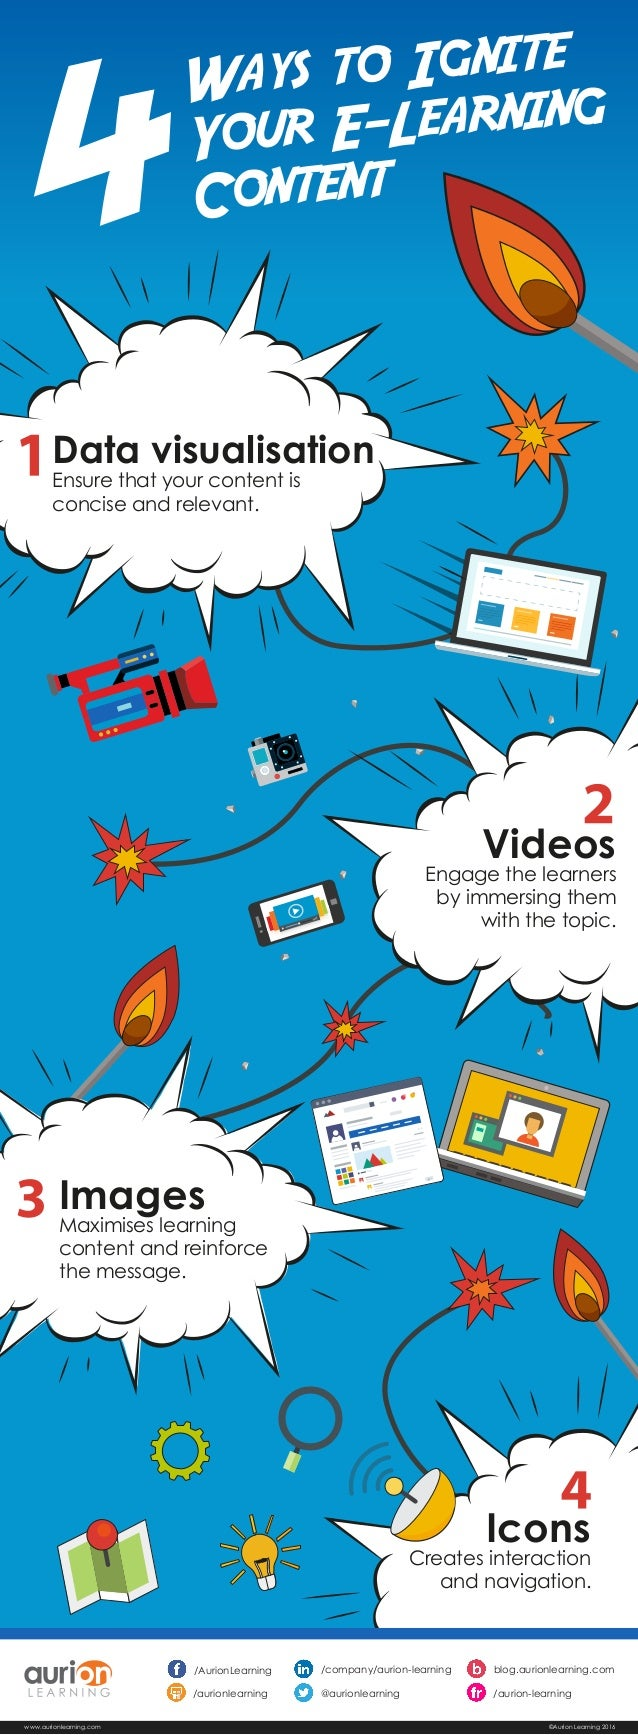 Videos Engage the learners by immersing them with the topic. Images Maximises learning content and reinforce the message. ...